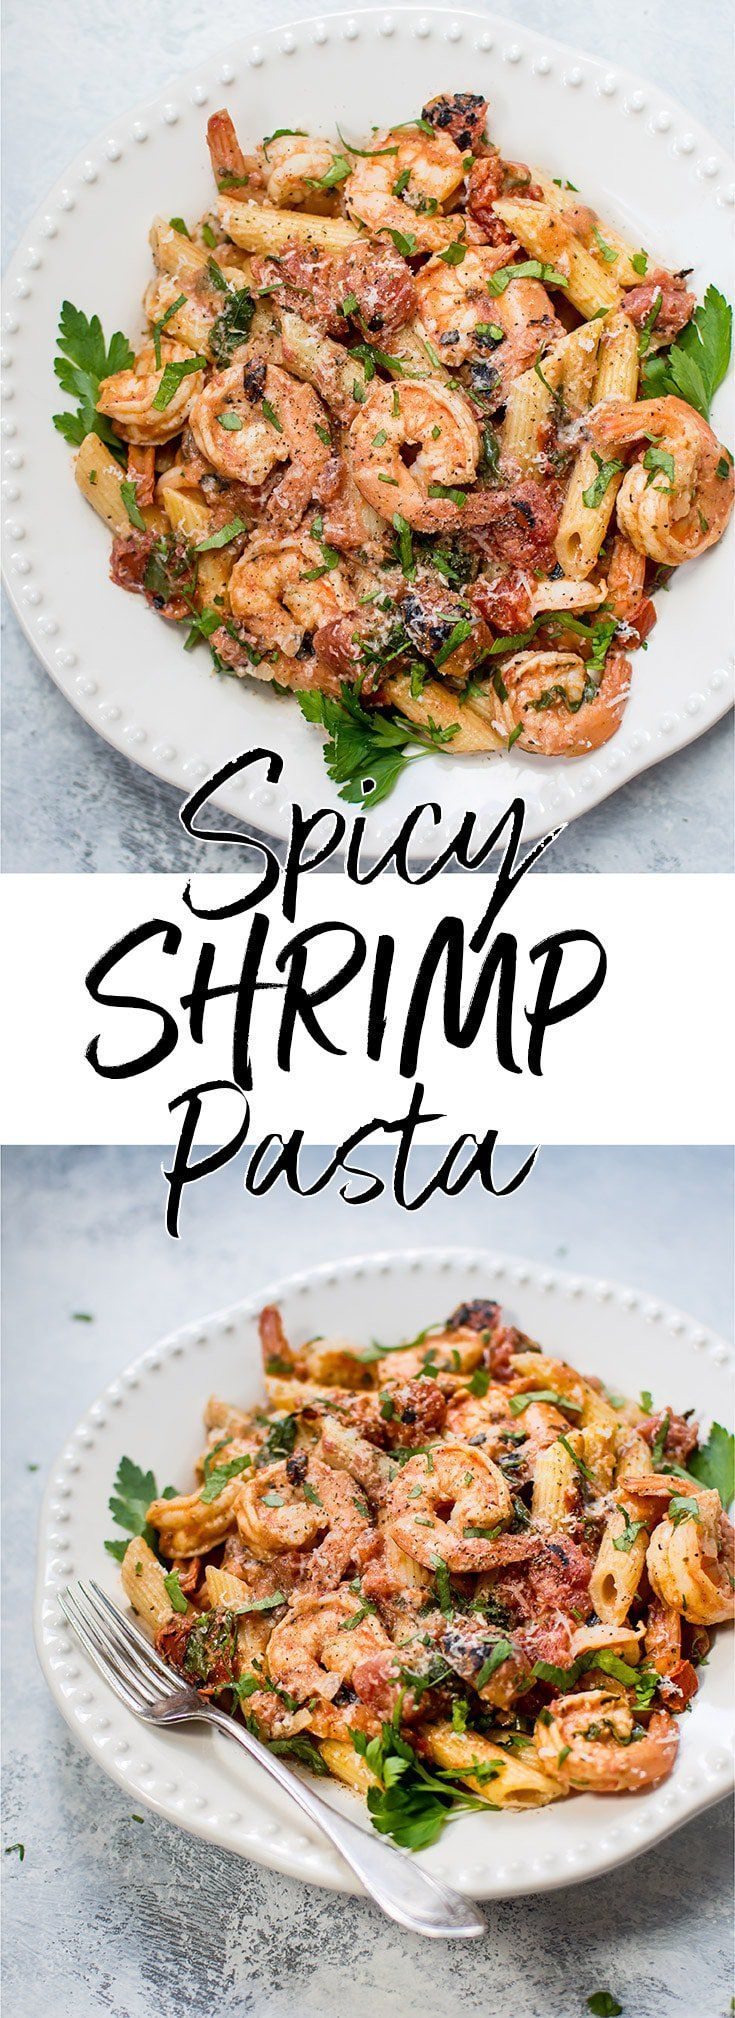 #ad This spicy shrimp pasta with a roasted tomato sauce is easy, fast, and very flavorful. Perfect for a gourmet weeknight dinner or for entertaining.#spicyshrimppasta